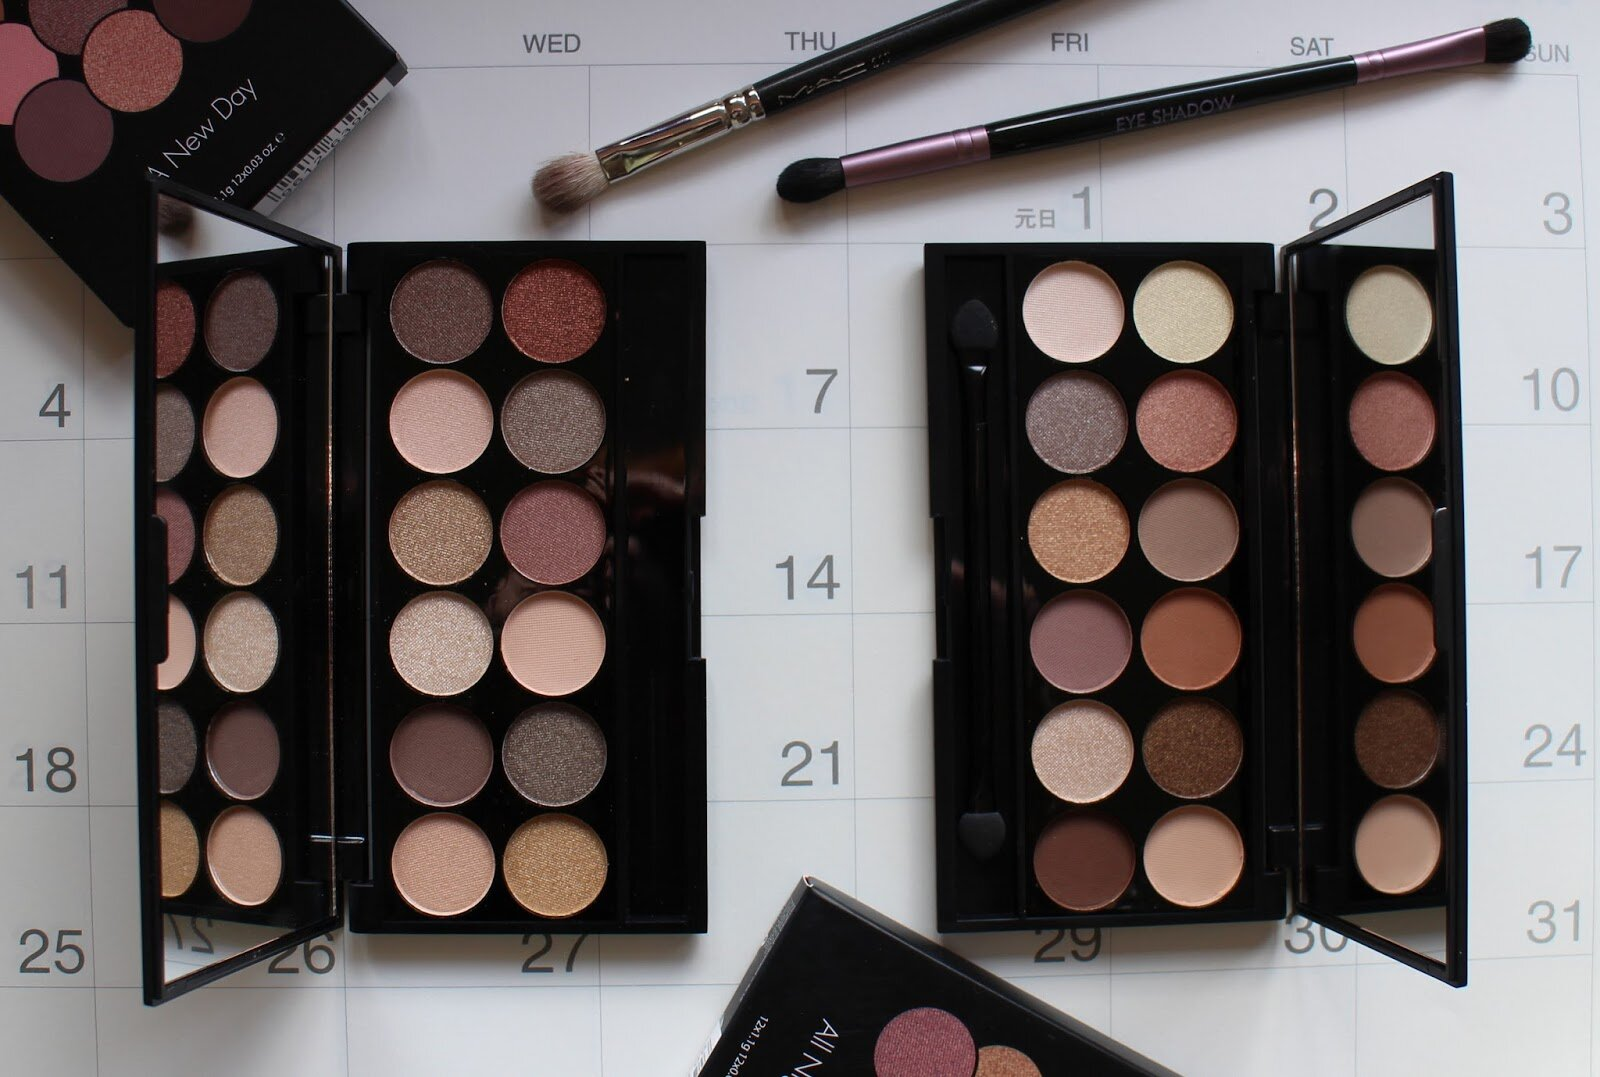 Review bảng phấn mắt giá rẻ SLEEK I-DIVINE PALETTES – A new day & All Night long